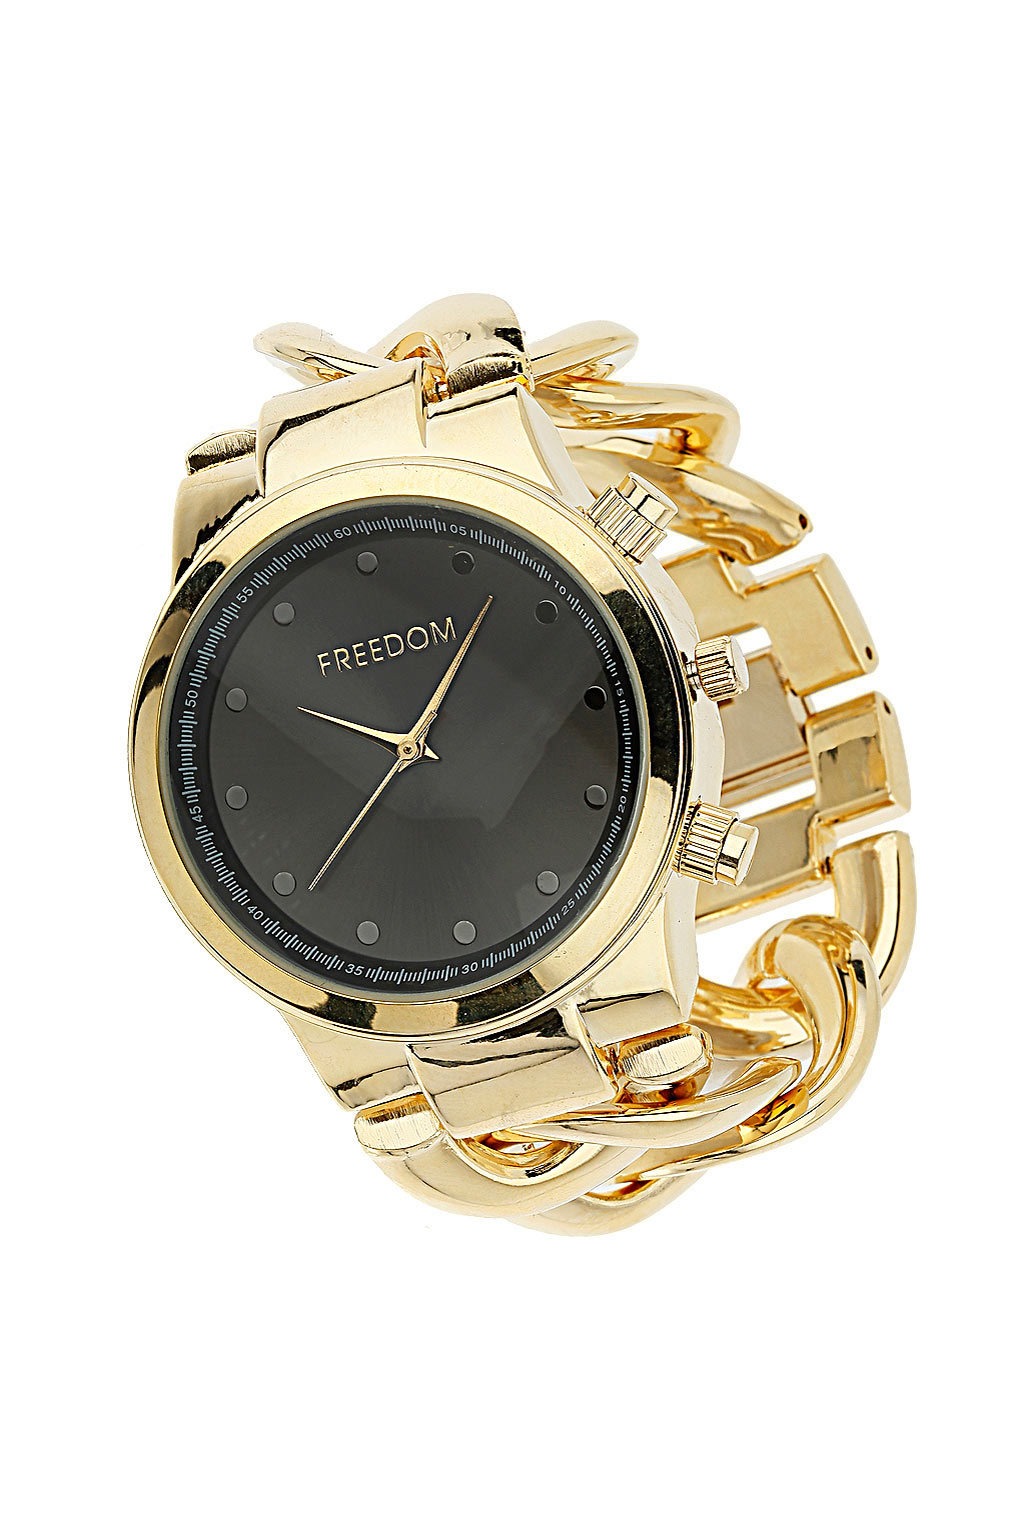 chain metal en titan regalia date watches watch gold in men